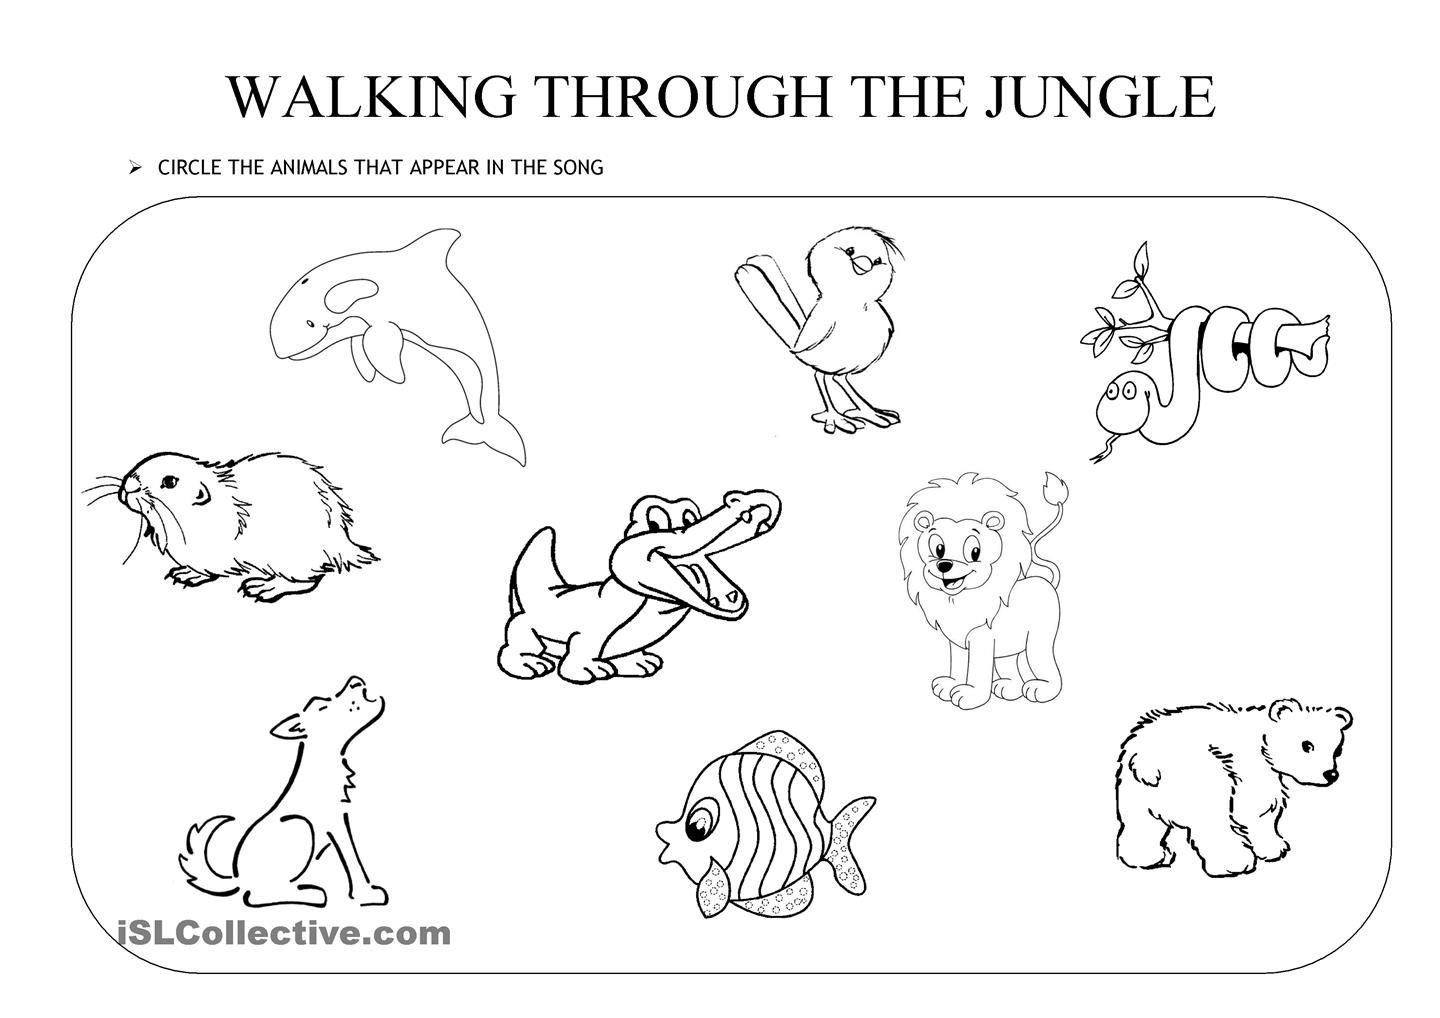 Walking Through The Jungle An Activity To Go With The Walking Through The Jungle Book Song By